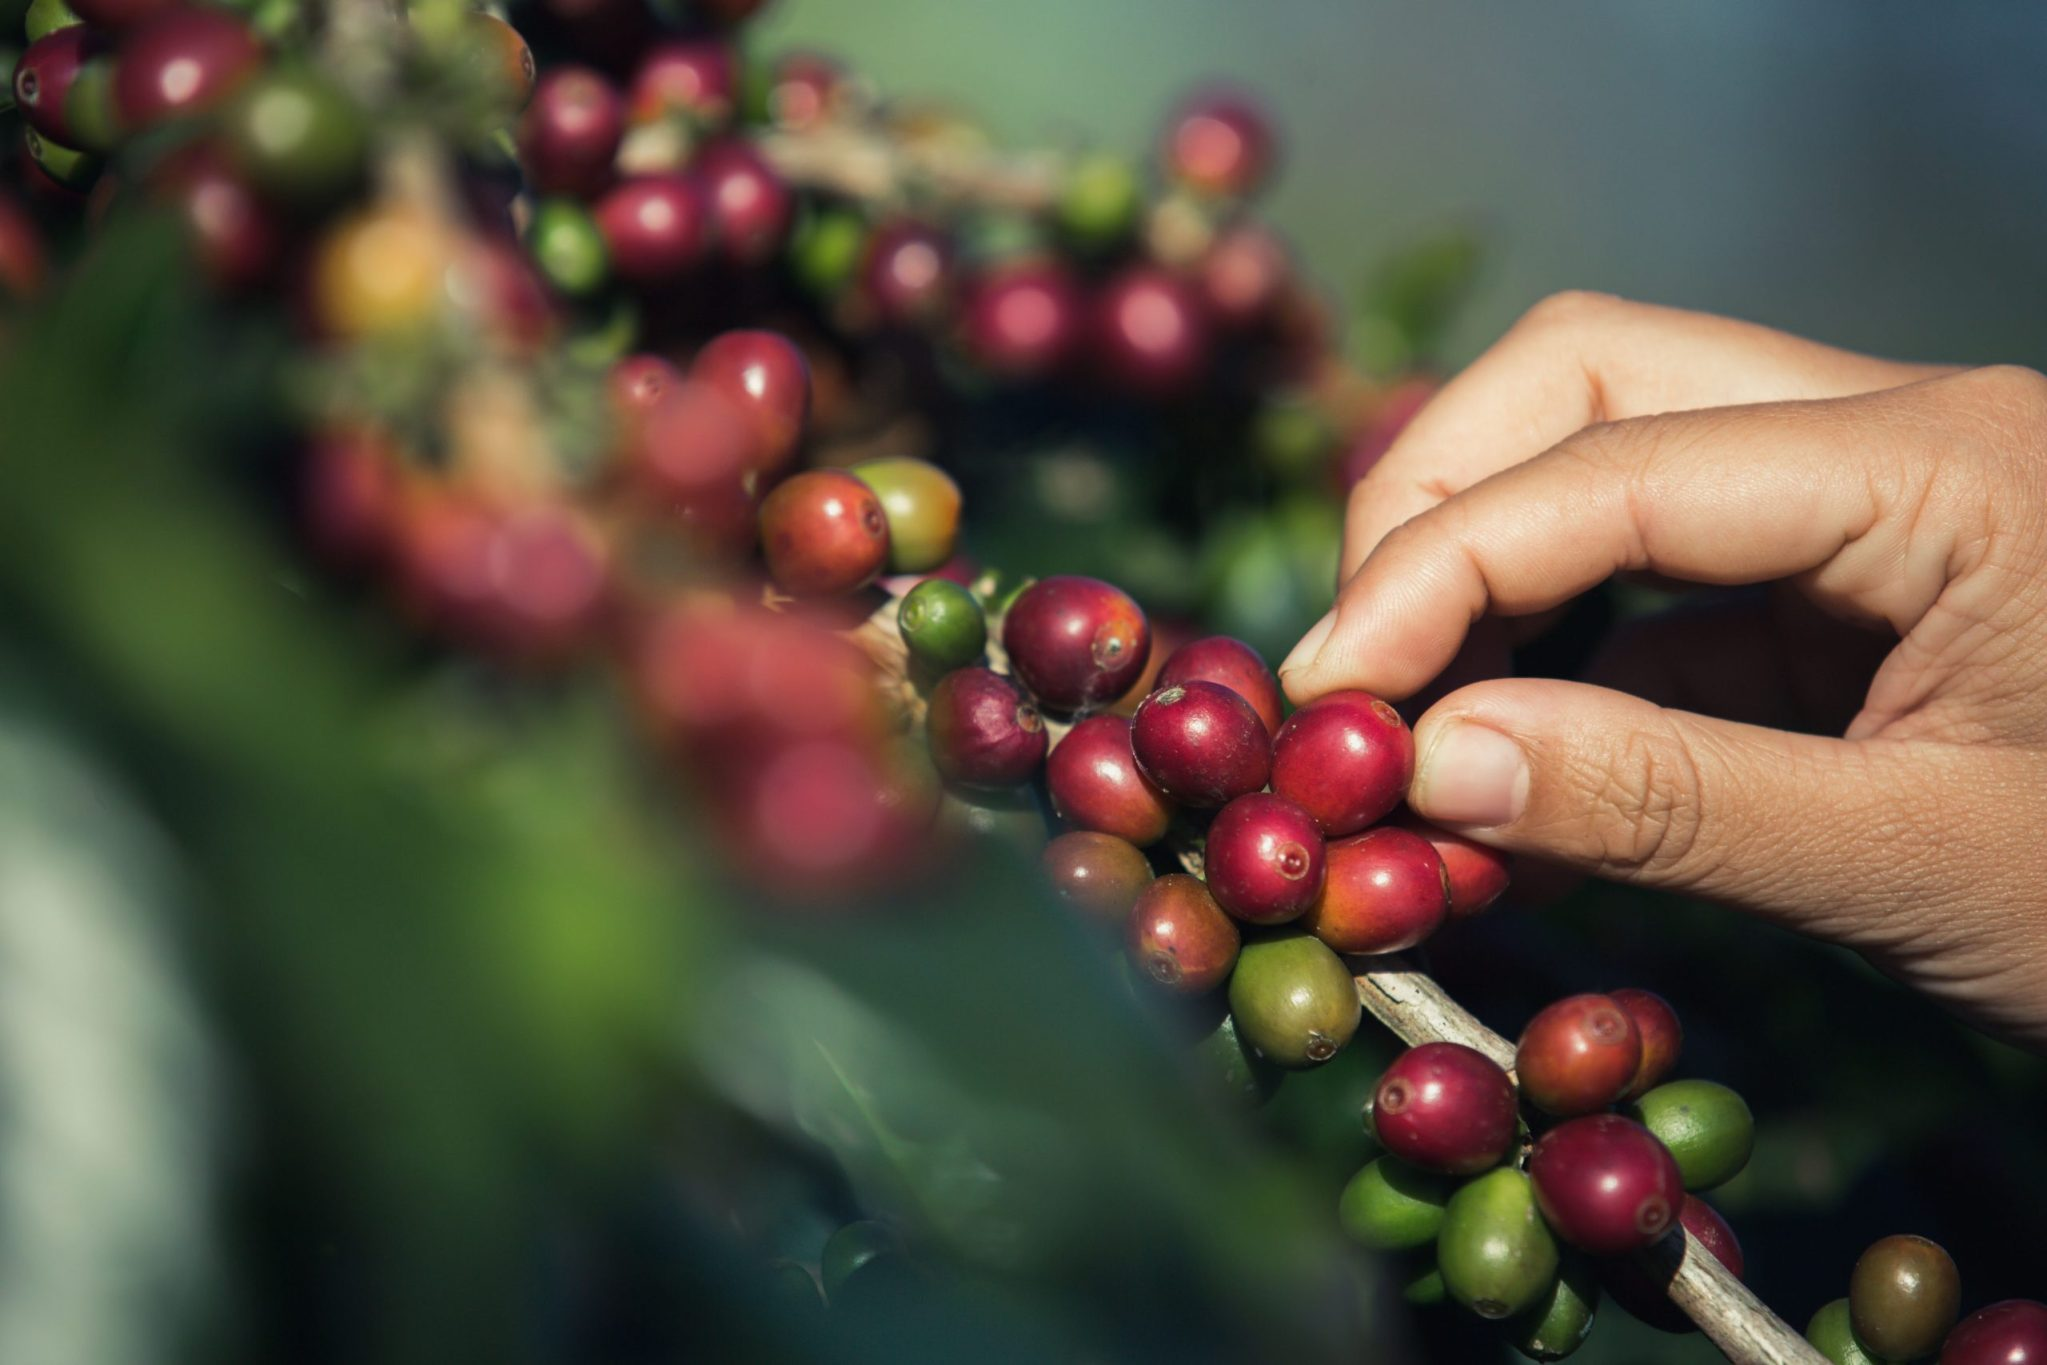 Hands that are picking coffee beans from the coffee tree